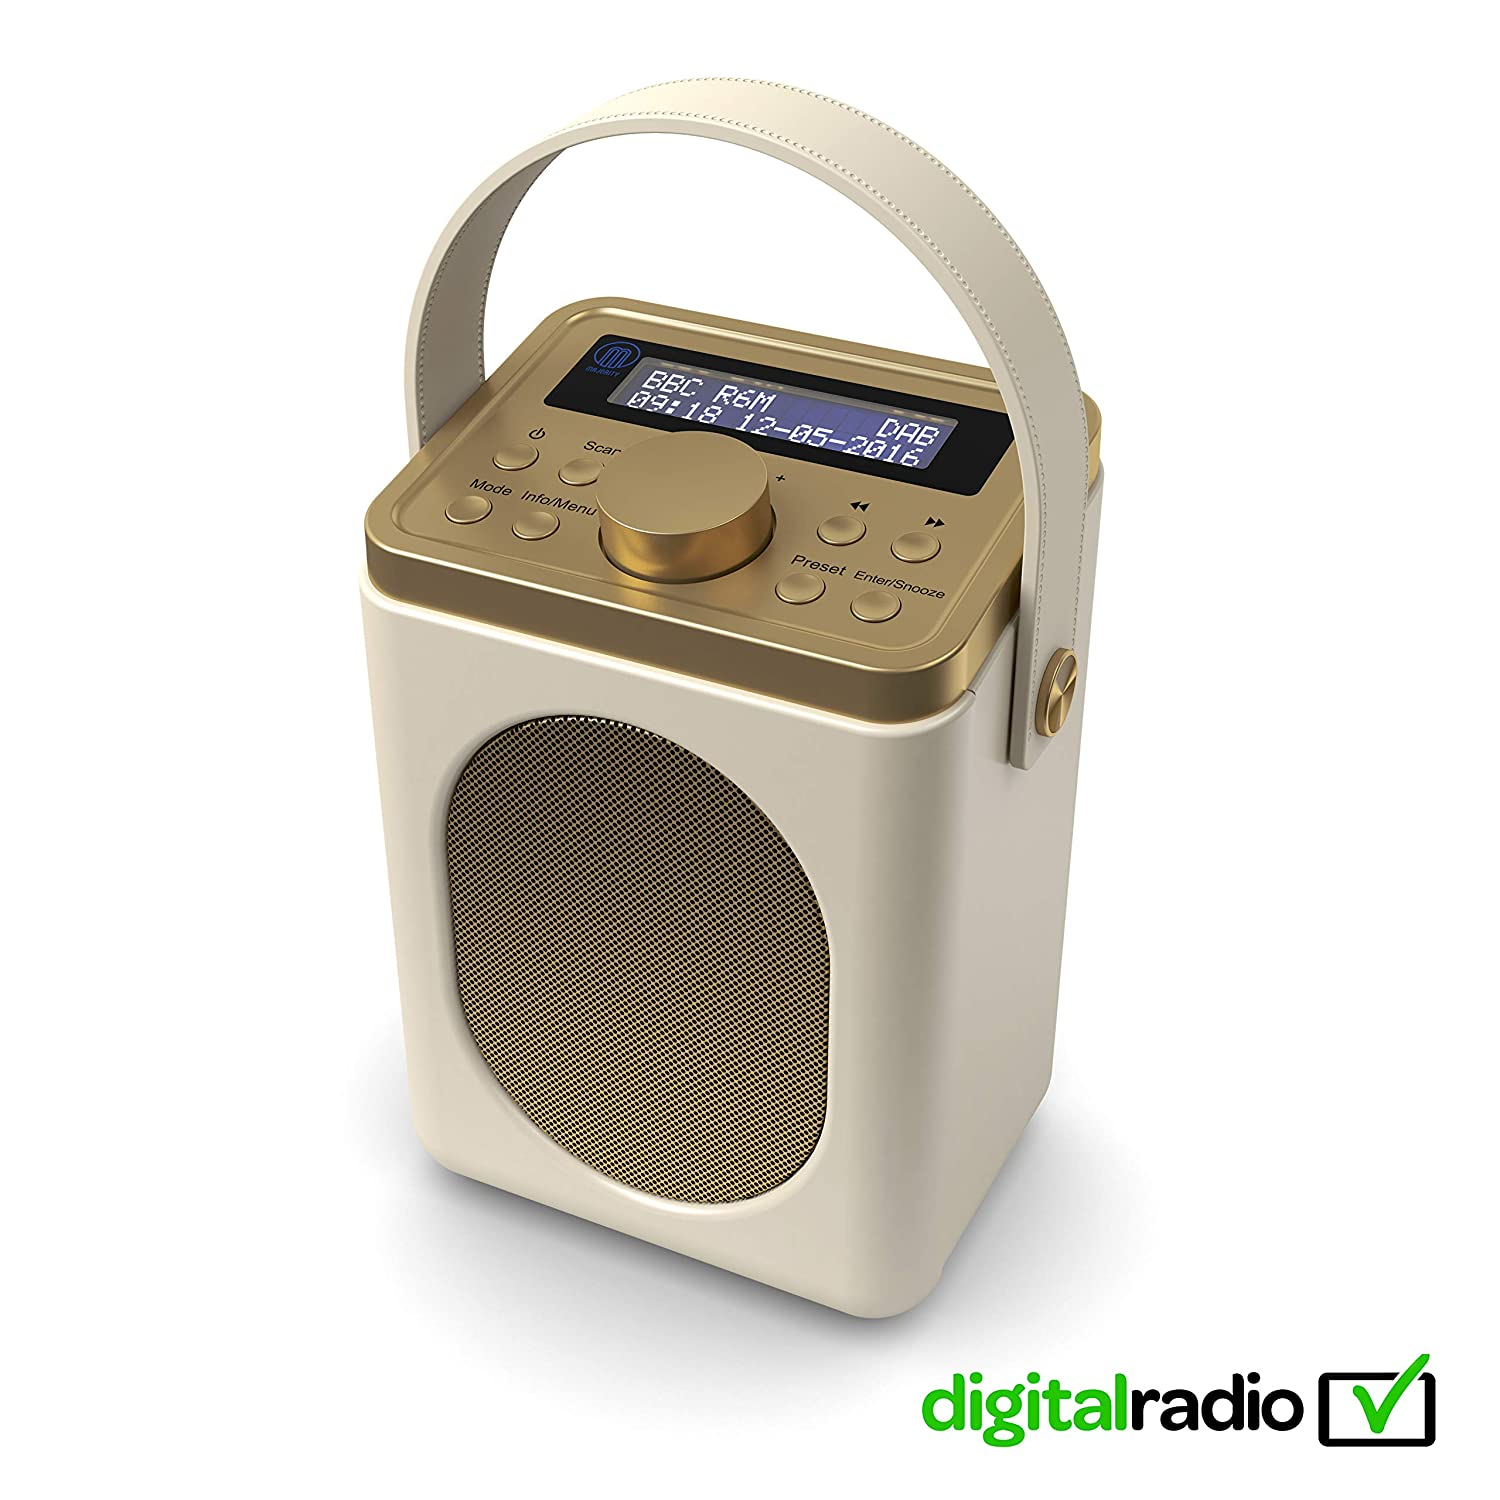 Majority Little Shelford Dabdab Digital Fm Radio Portable Wireless Bluetooth With Stereo Sound Dual Alarm Clockleather Effect Finishmains